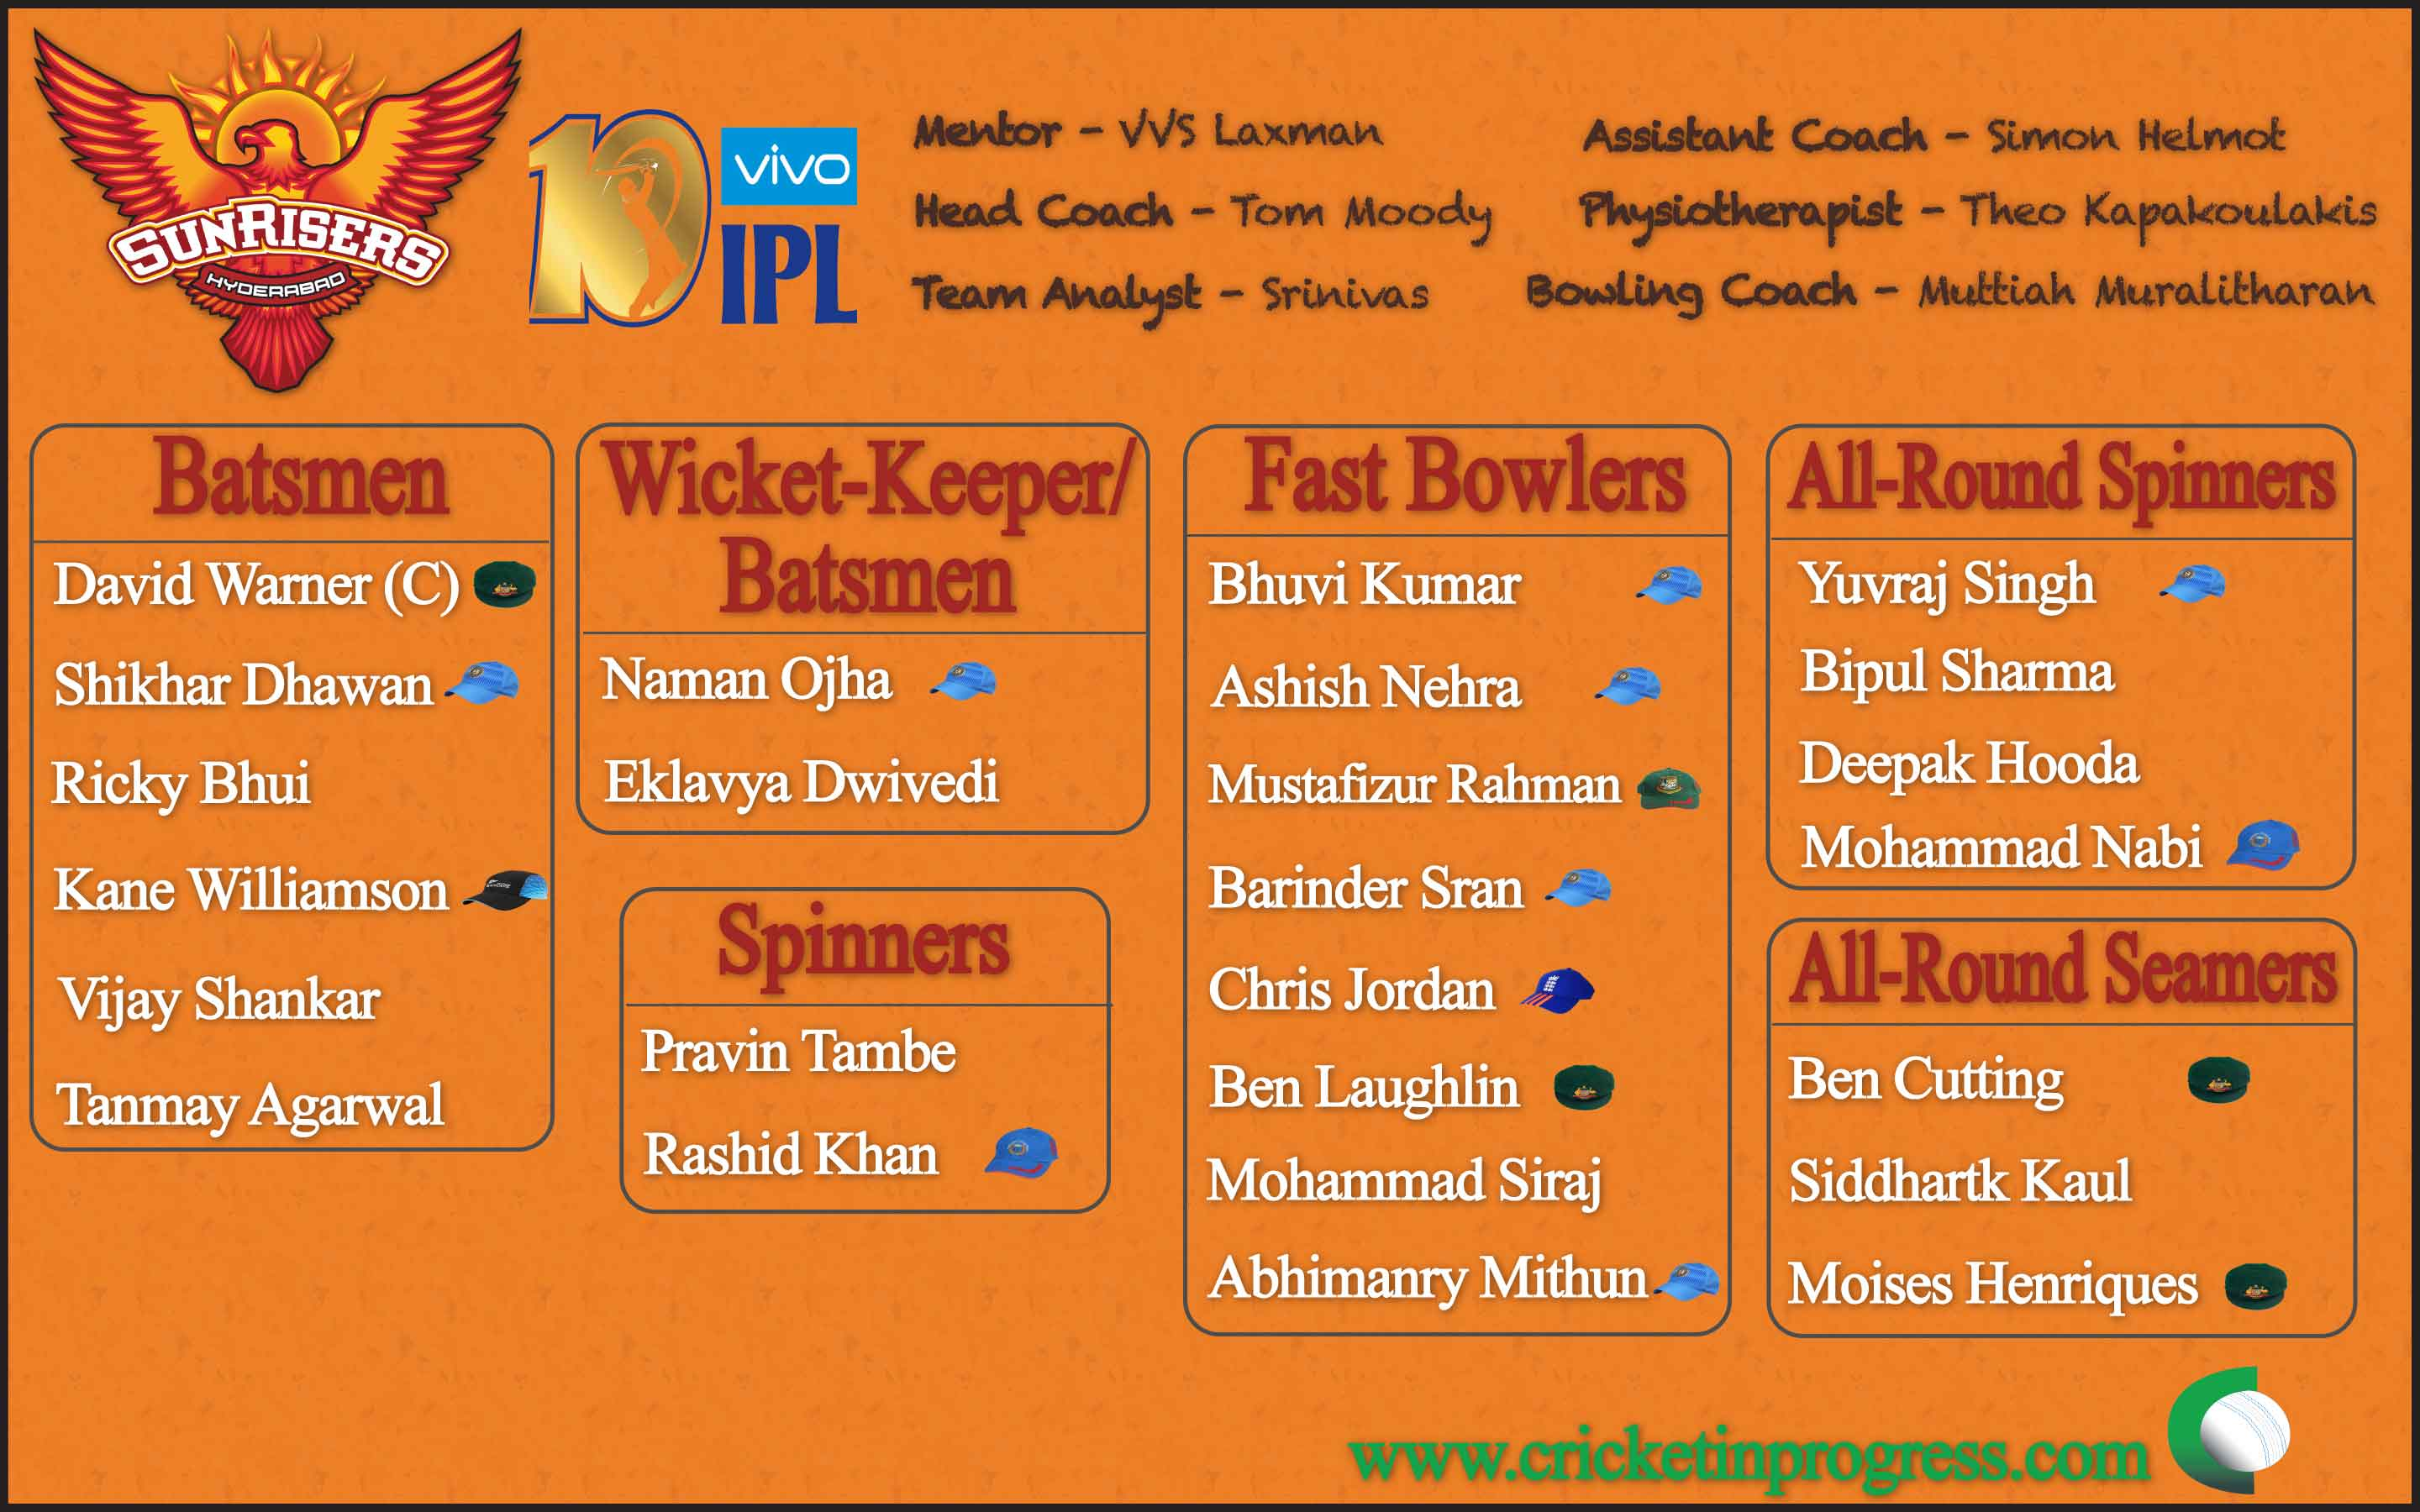 Sunrisers Hyderabad Roster